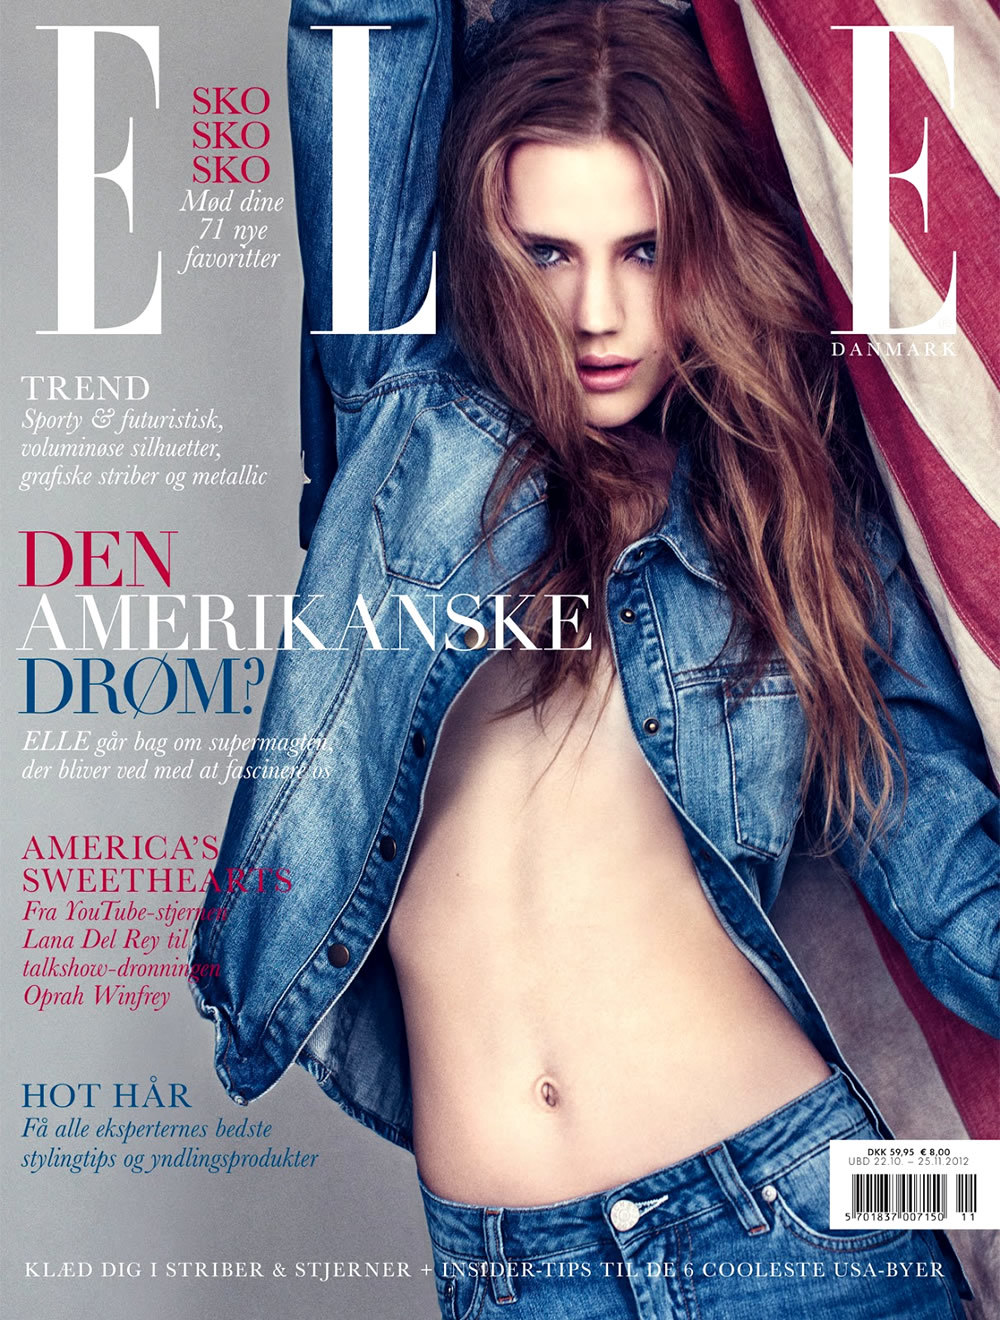 Esther Heesch covers Danish Vogue. Heesch is 16-years-old.